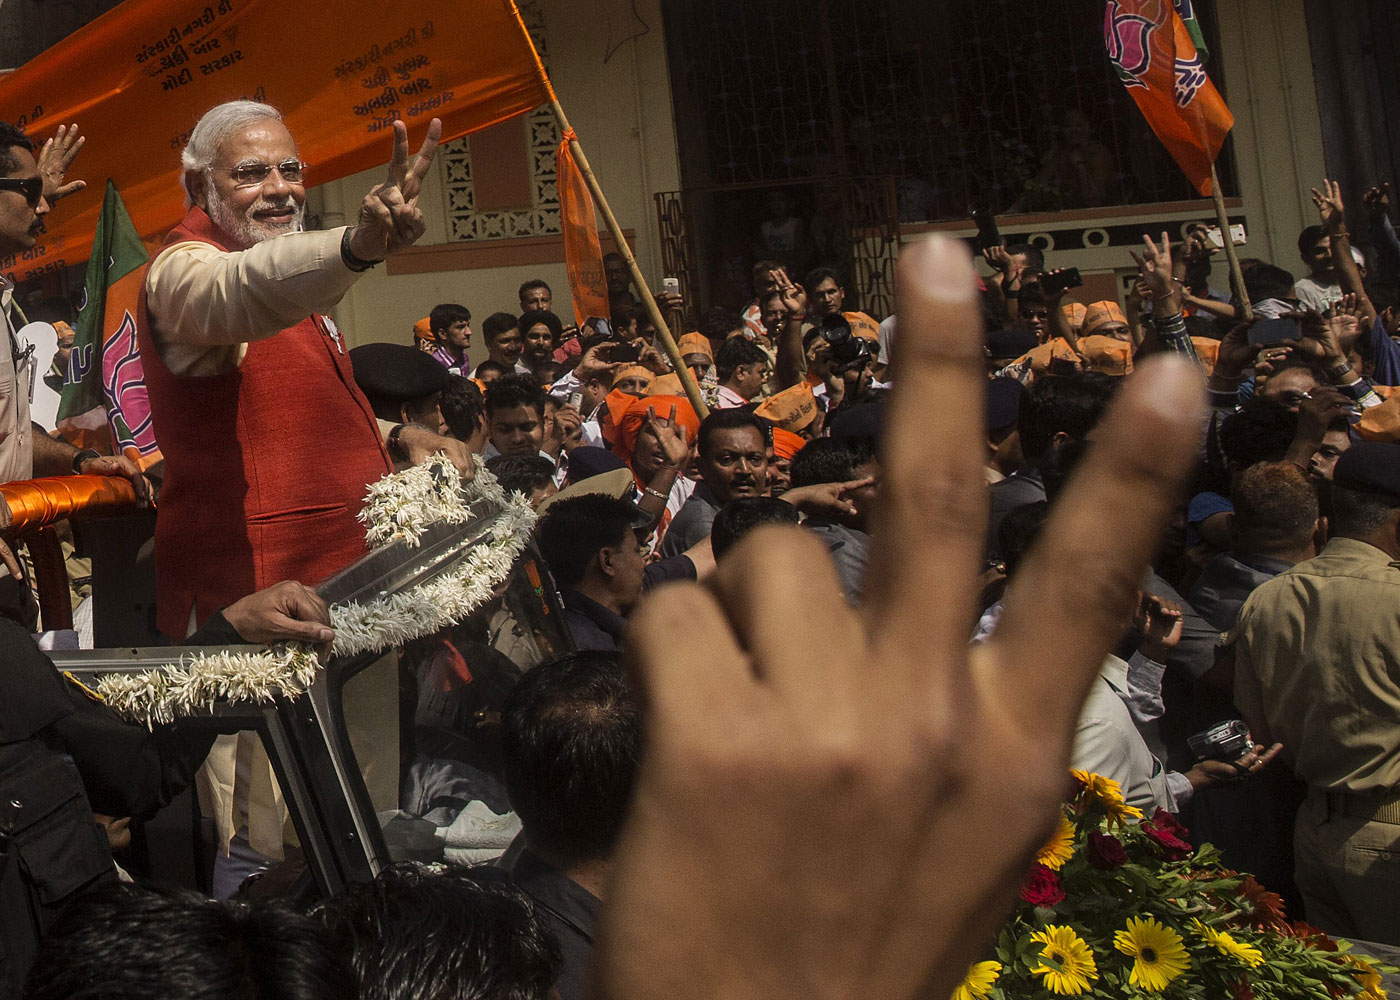 Bharatiya Janata Party leader Narendra Modi gestures to supporters as he rides in an open jeep on his way to file nomination papers on April 9, 2014 in Vadodra, India.